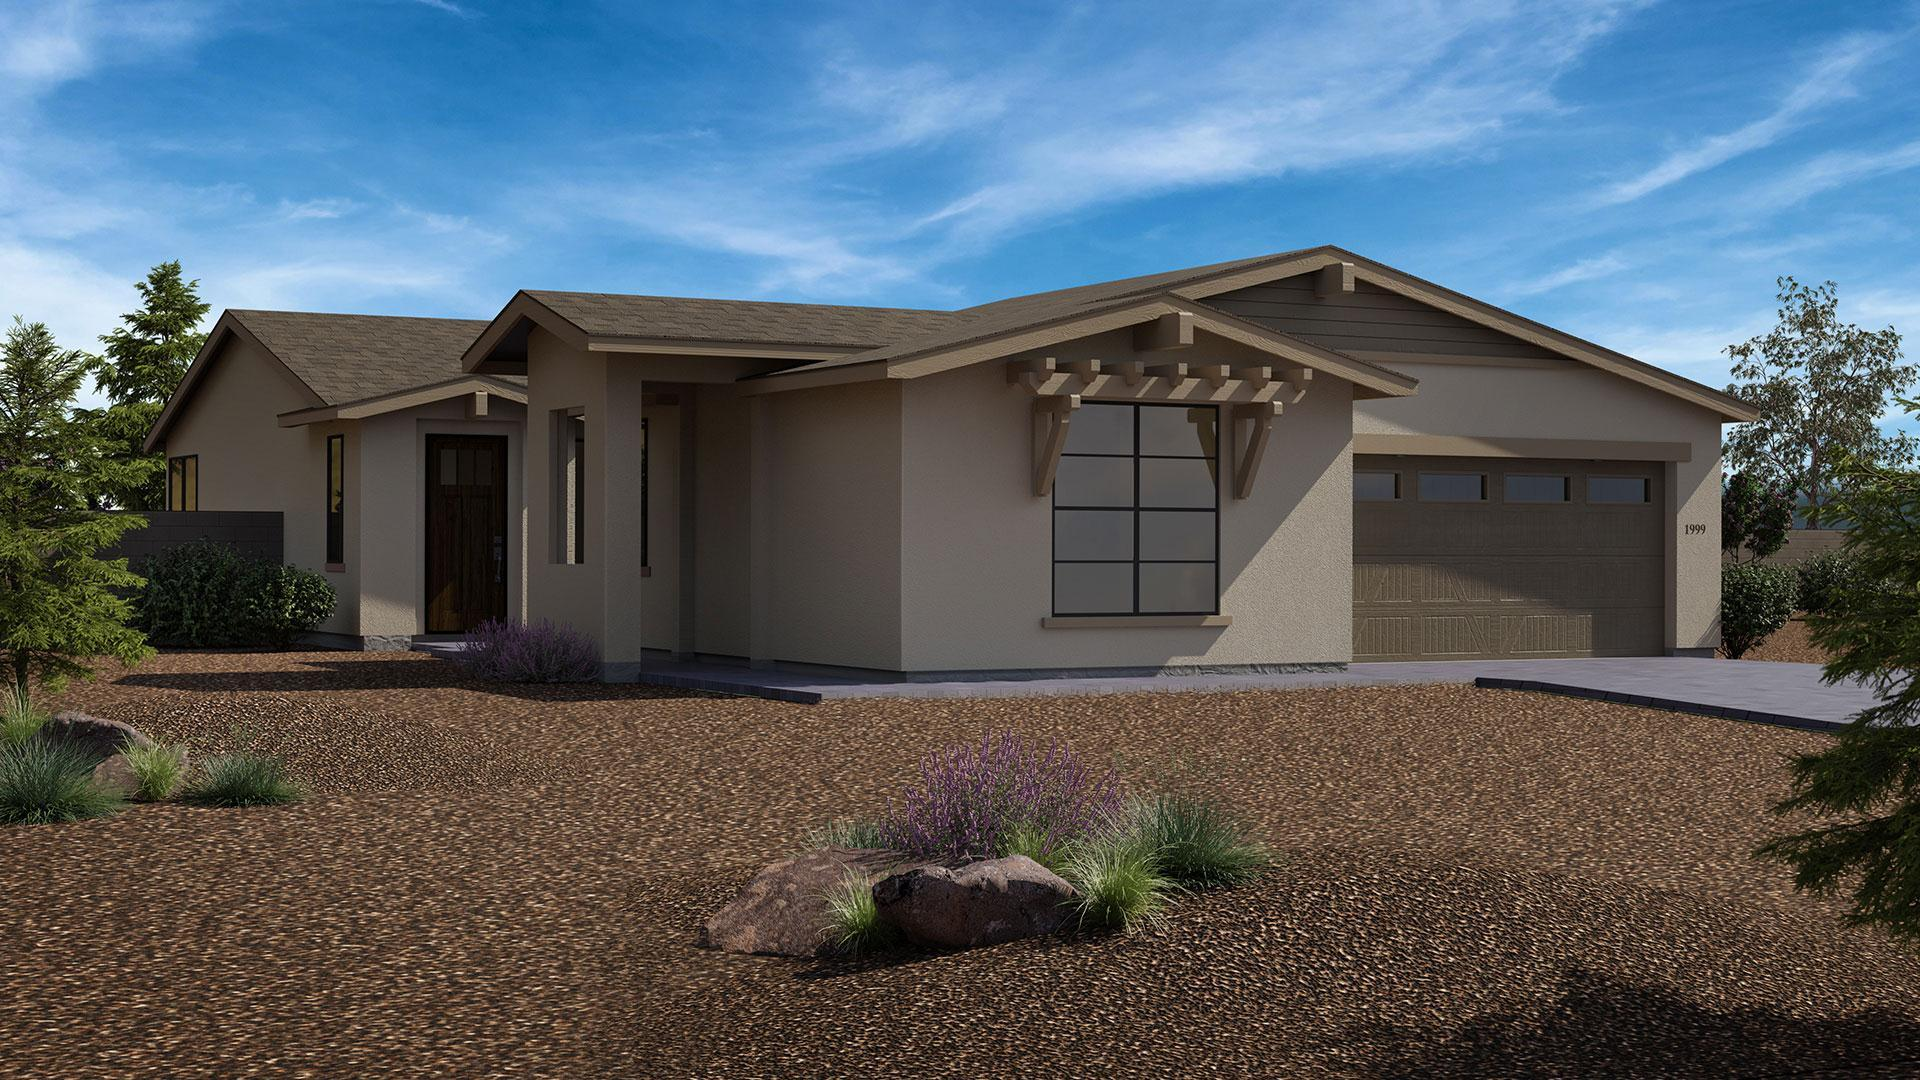 Star Gazer at Foothills: Traditional